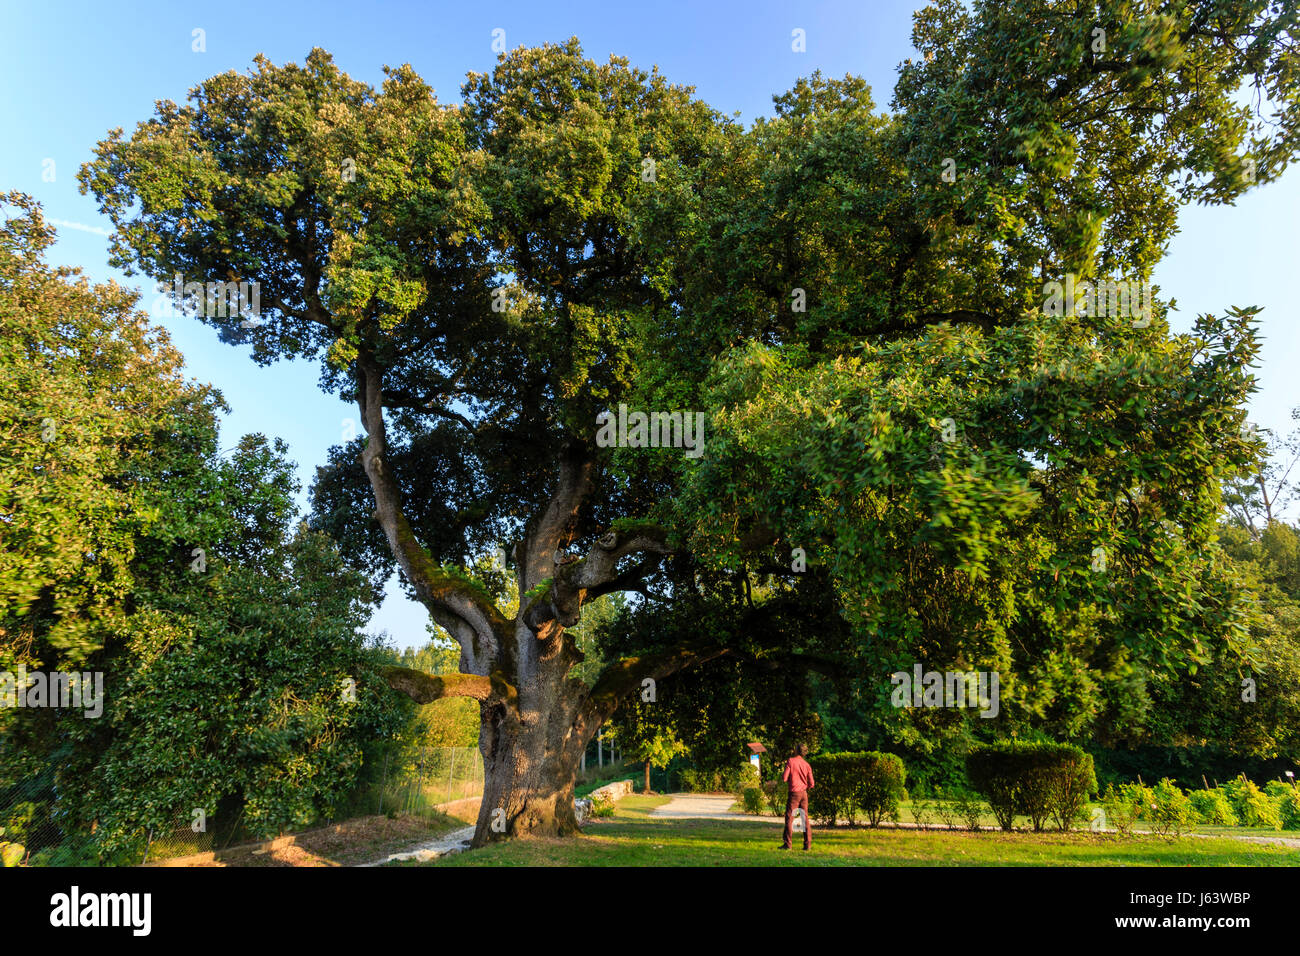 France, Charente, Cherves Richemont, holm oak (Quercus ilex) four centuries old classified Remarkable Tree in the Stock Photo